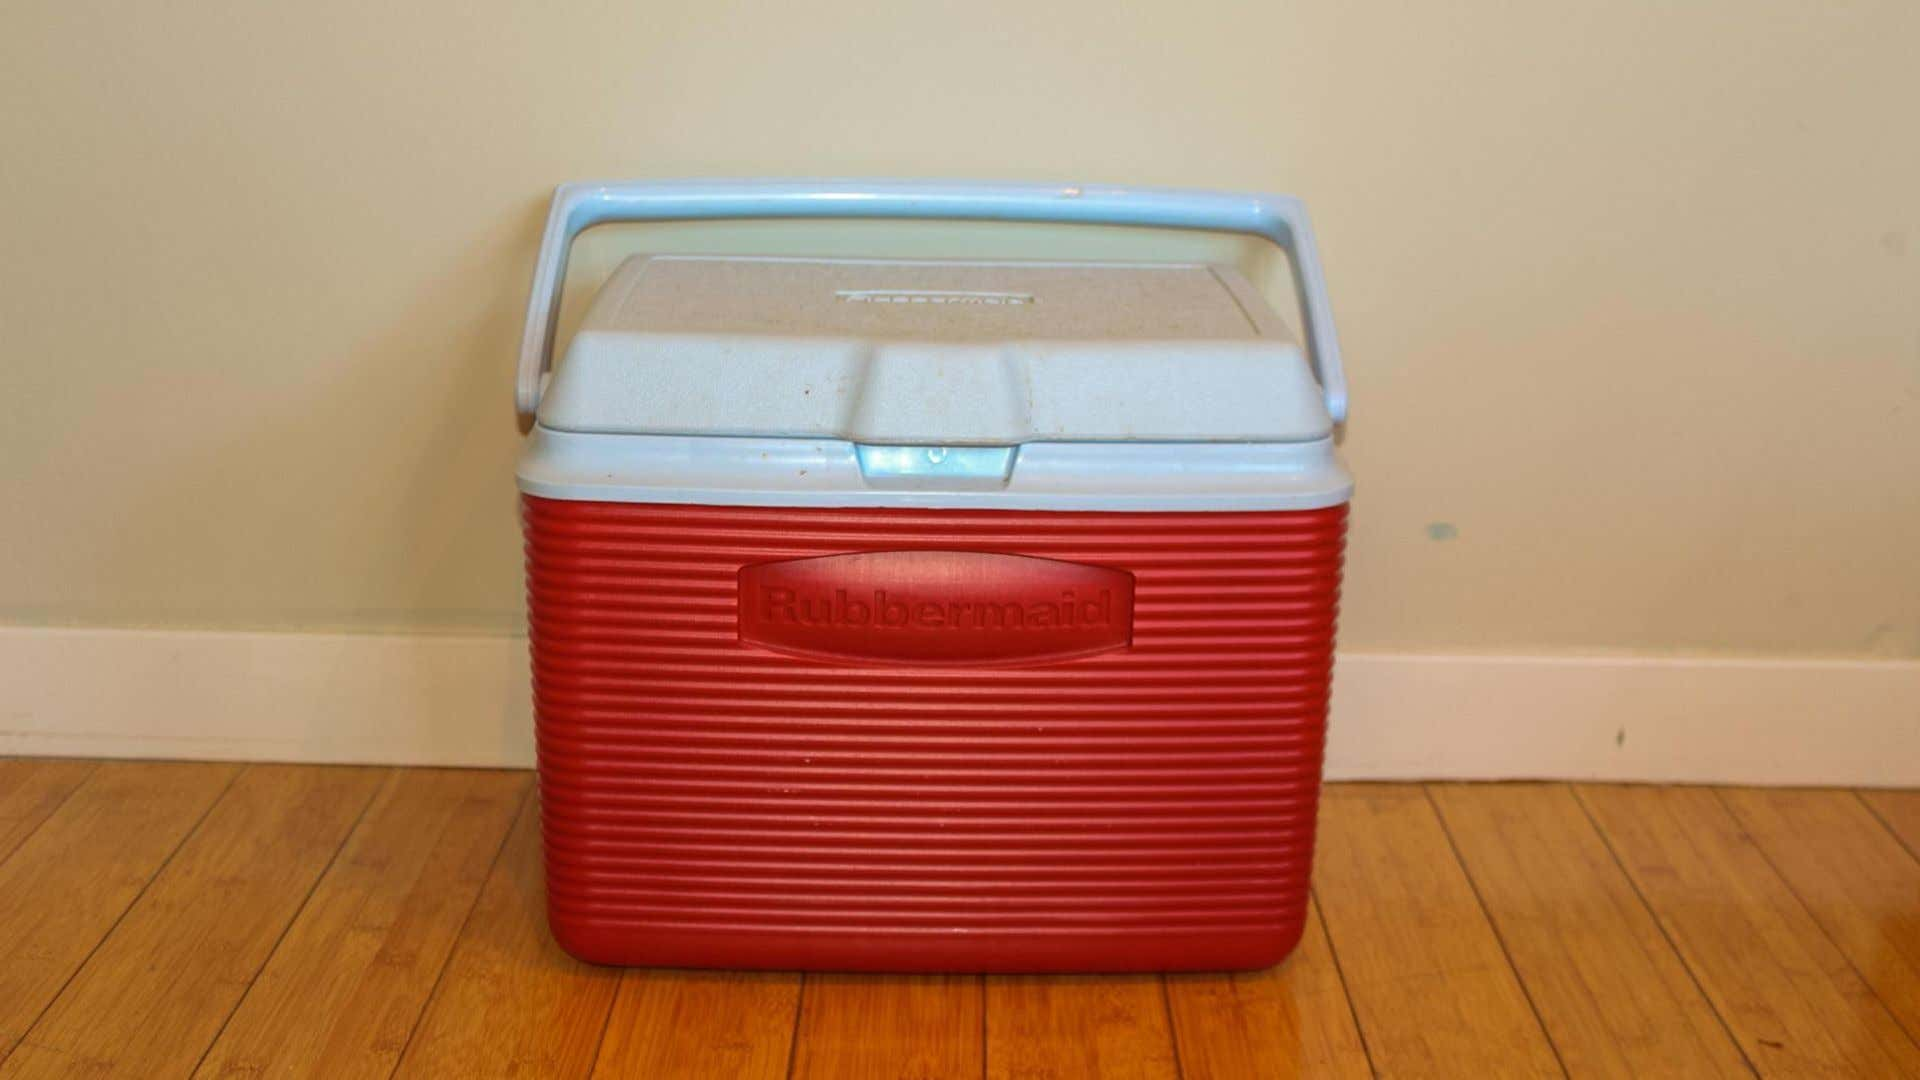 A red rubbermaid cooler.